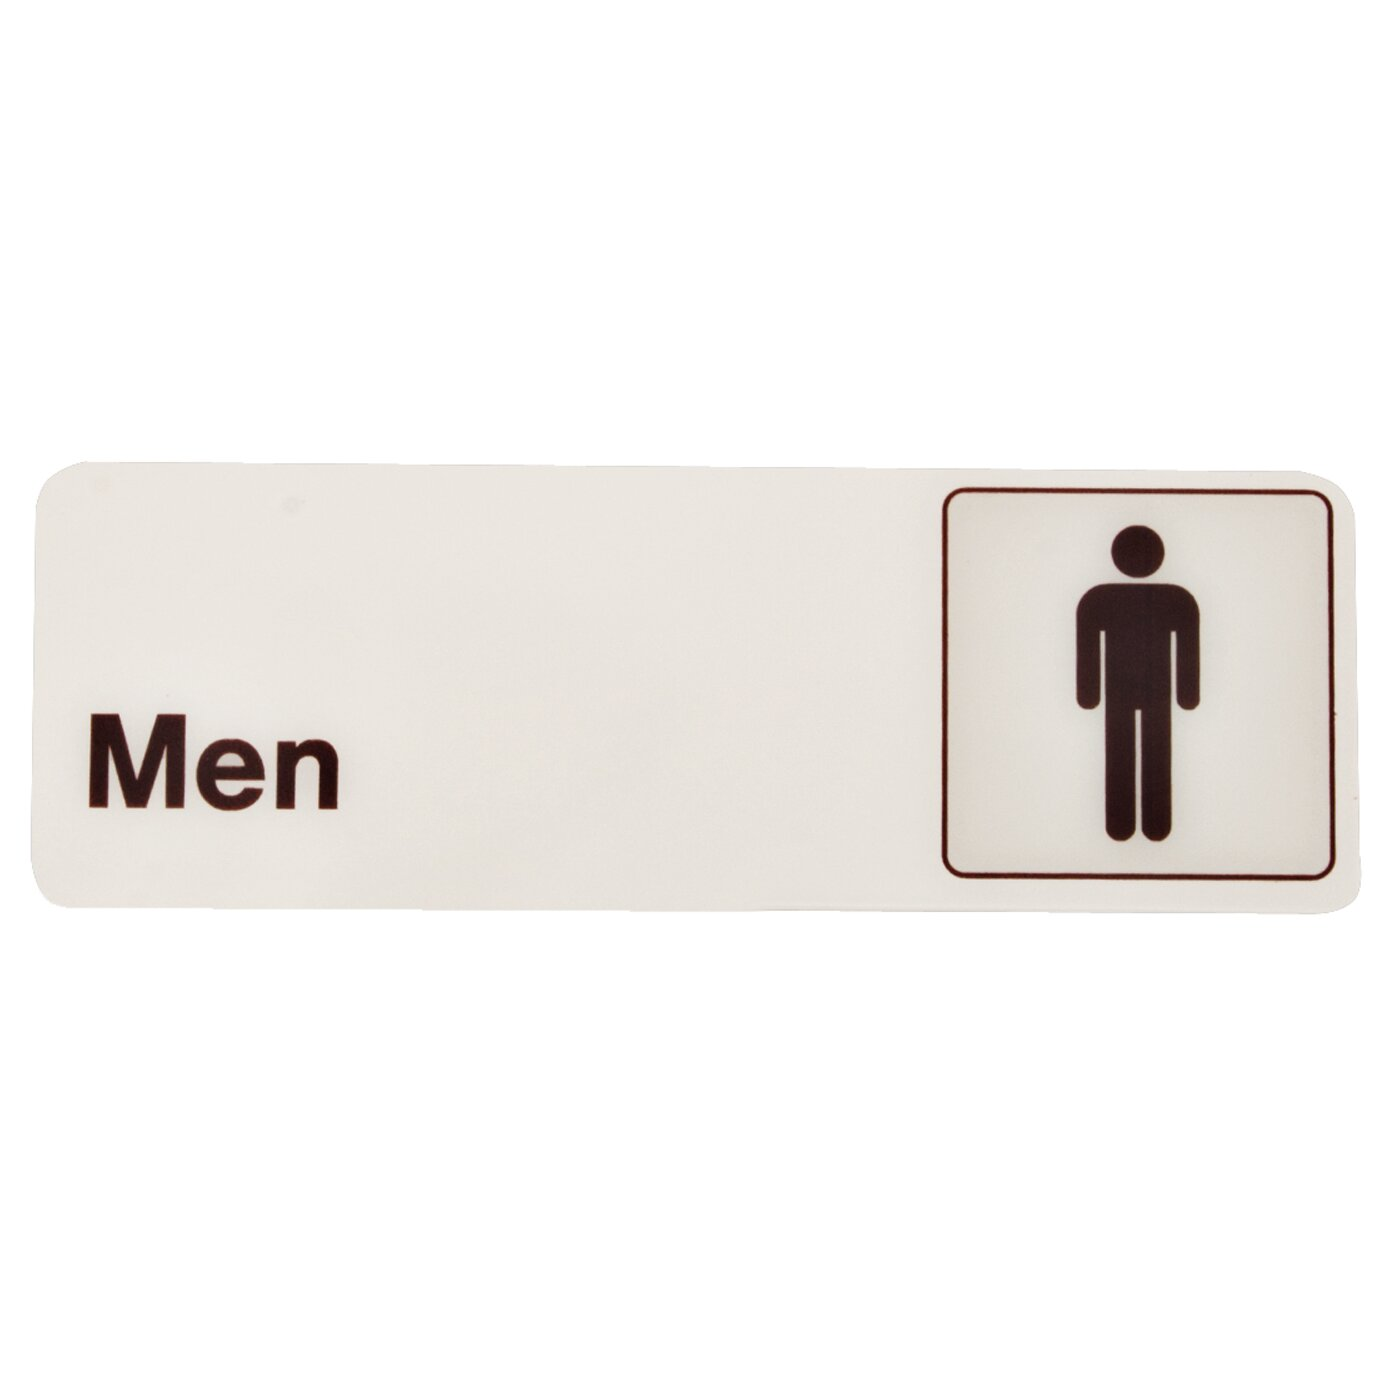 Pics Photos From Men Bathroom Sign